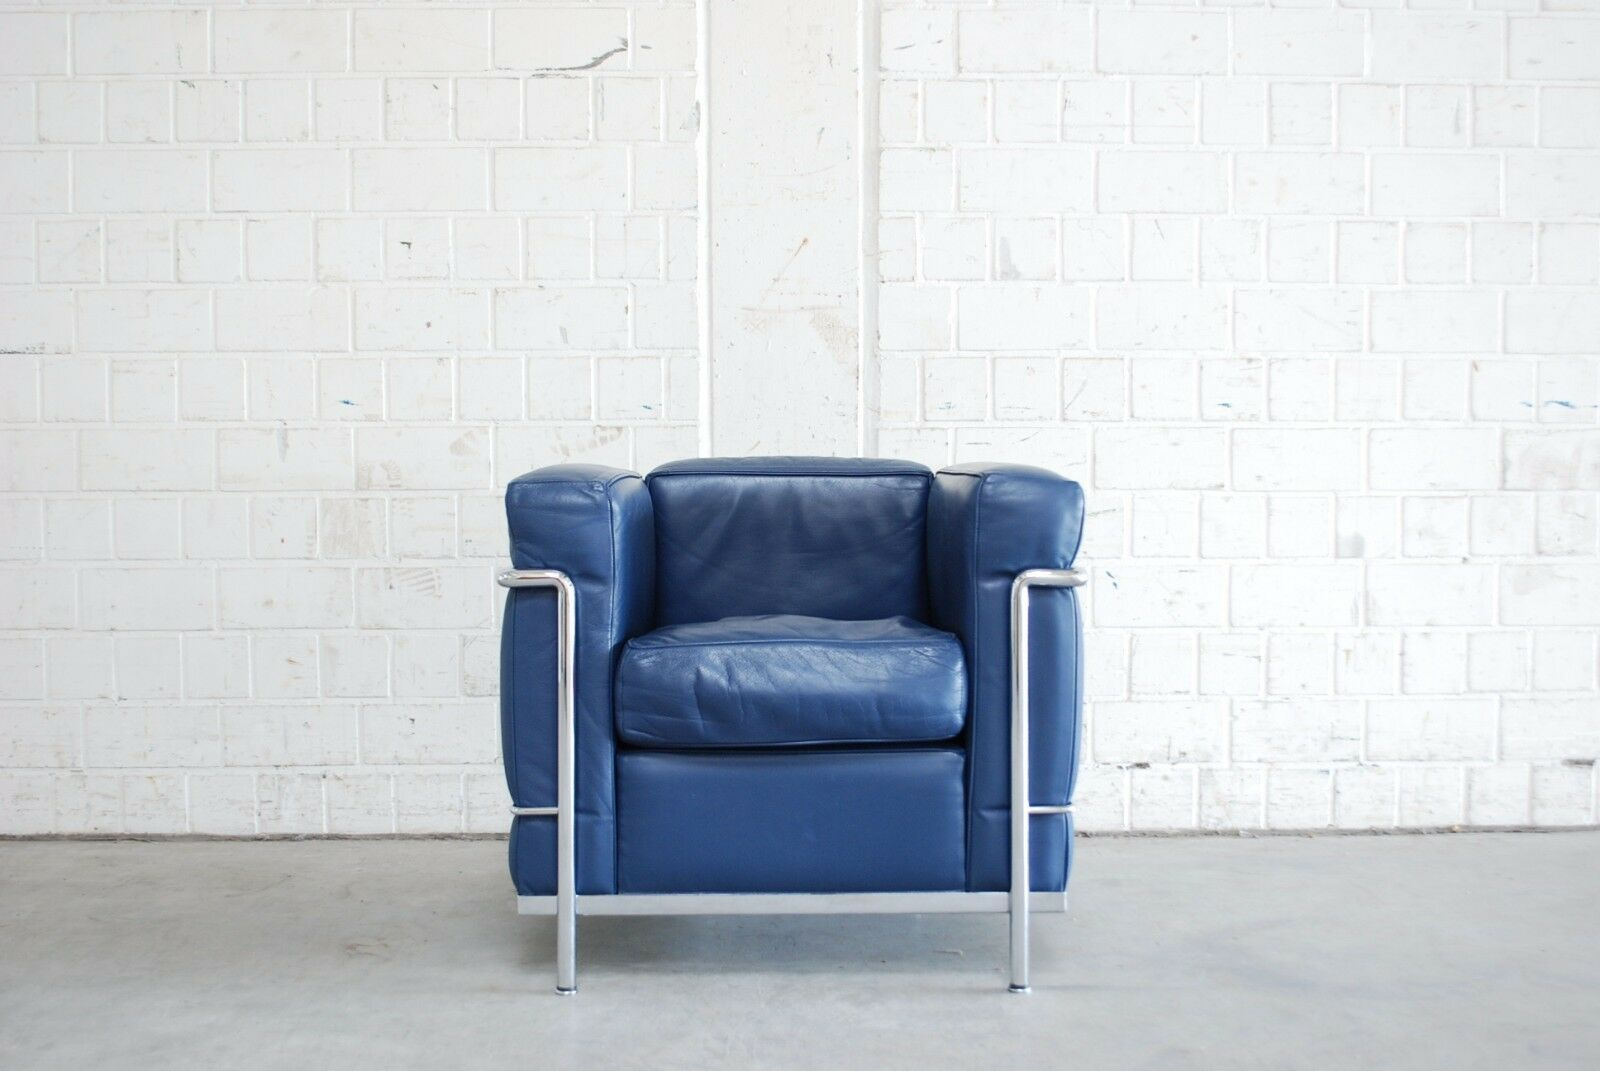 Le Corbusier Sessel Lc2 Original Cassina Le Corbusier Lc2 Sessel In Leder